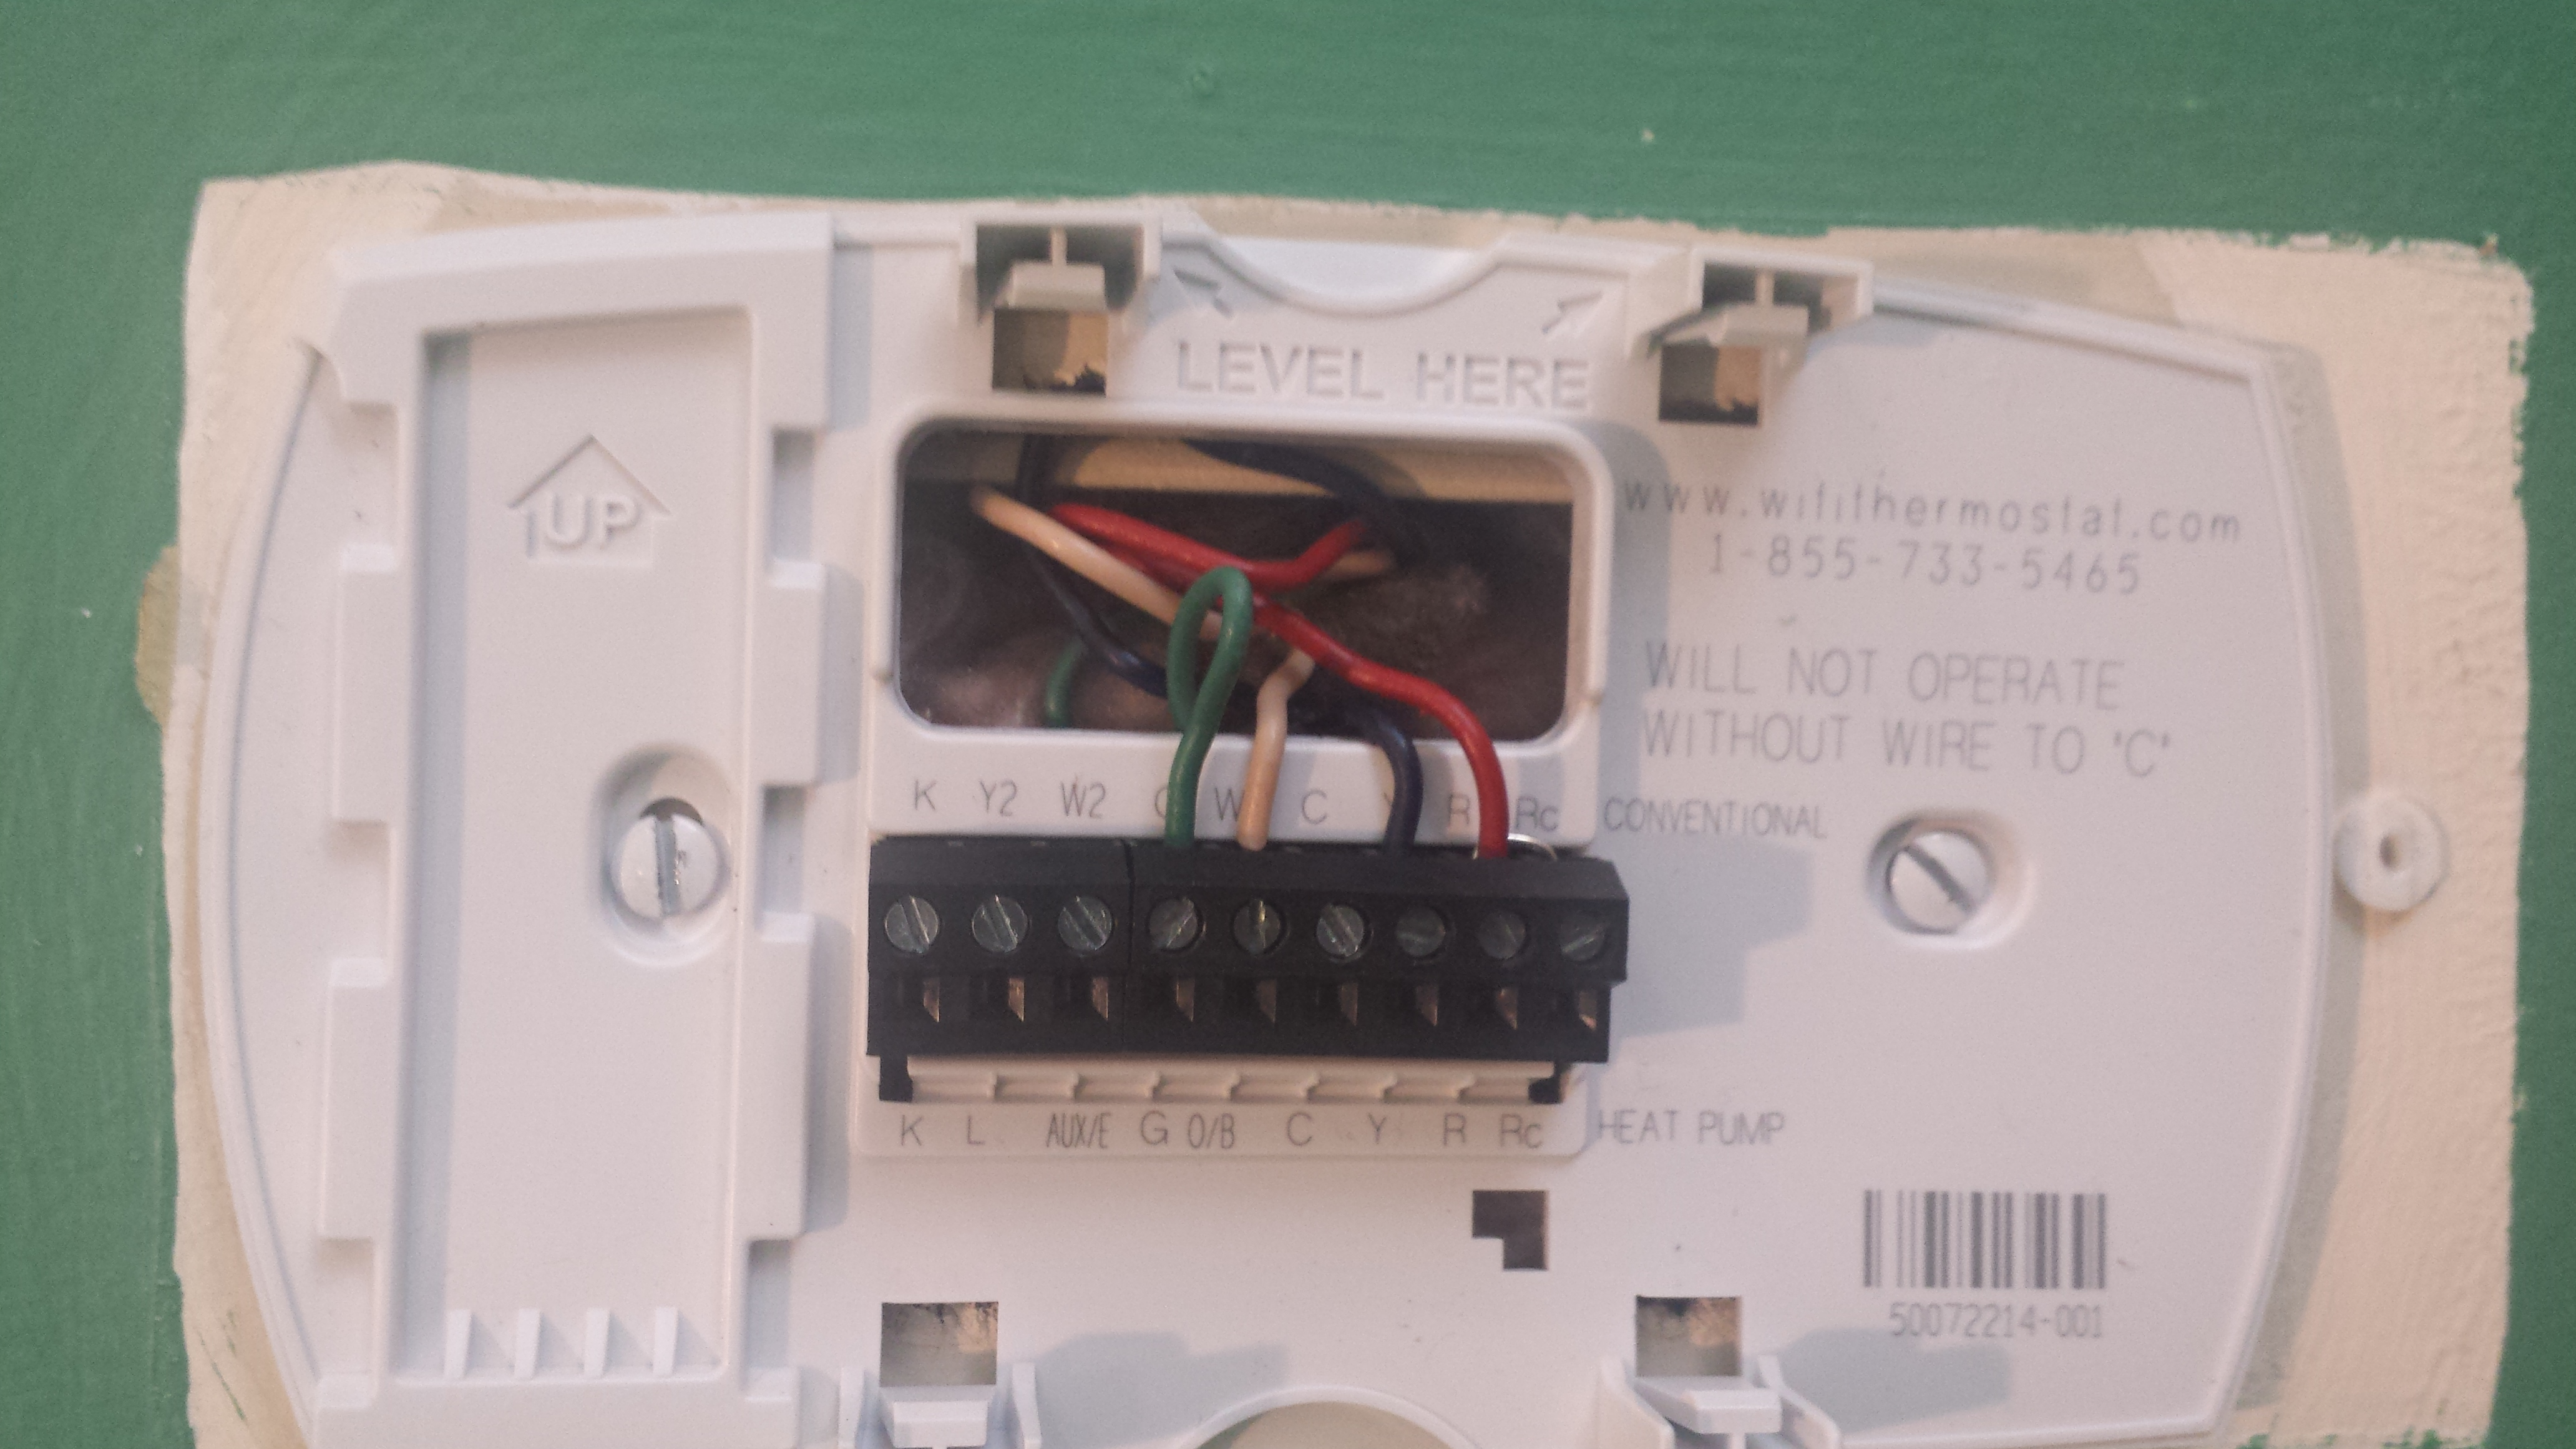 I Am Wiring Xv90 With Honeywell Wifi Termostat And Missing C Trane Diagram 2014 07 26 230018 20140726 175515